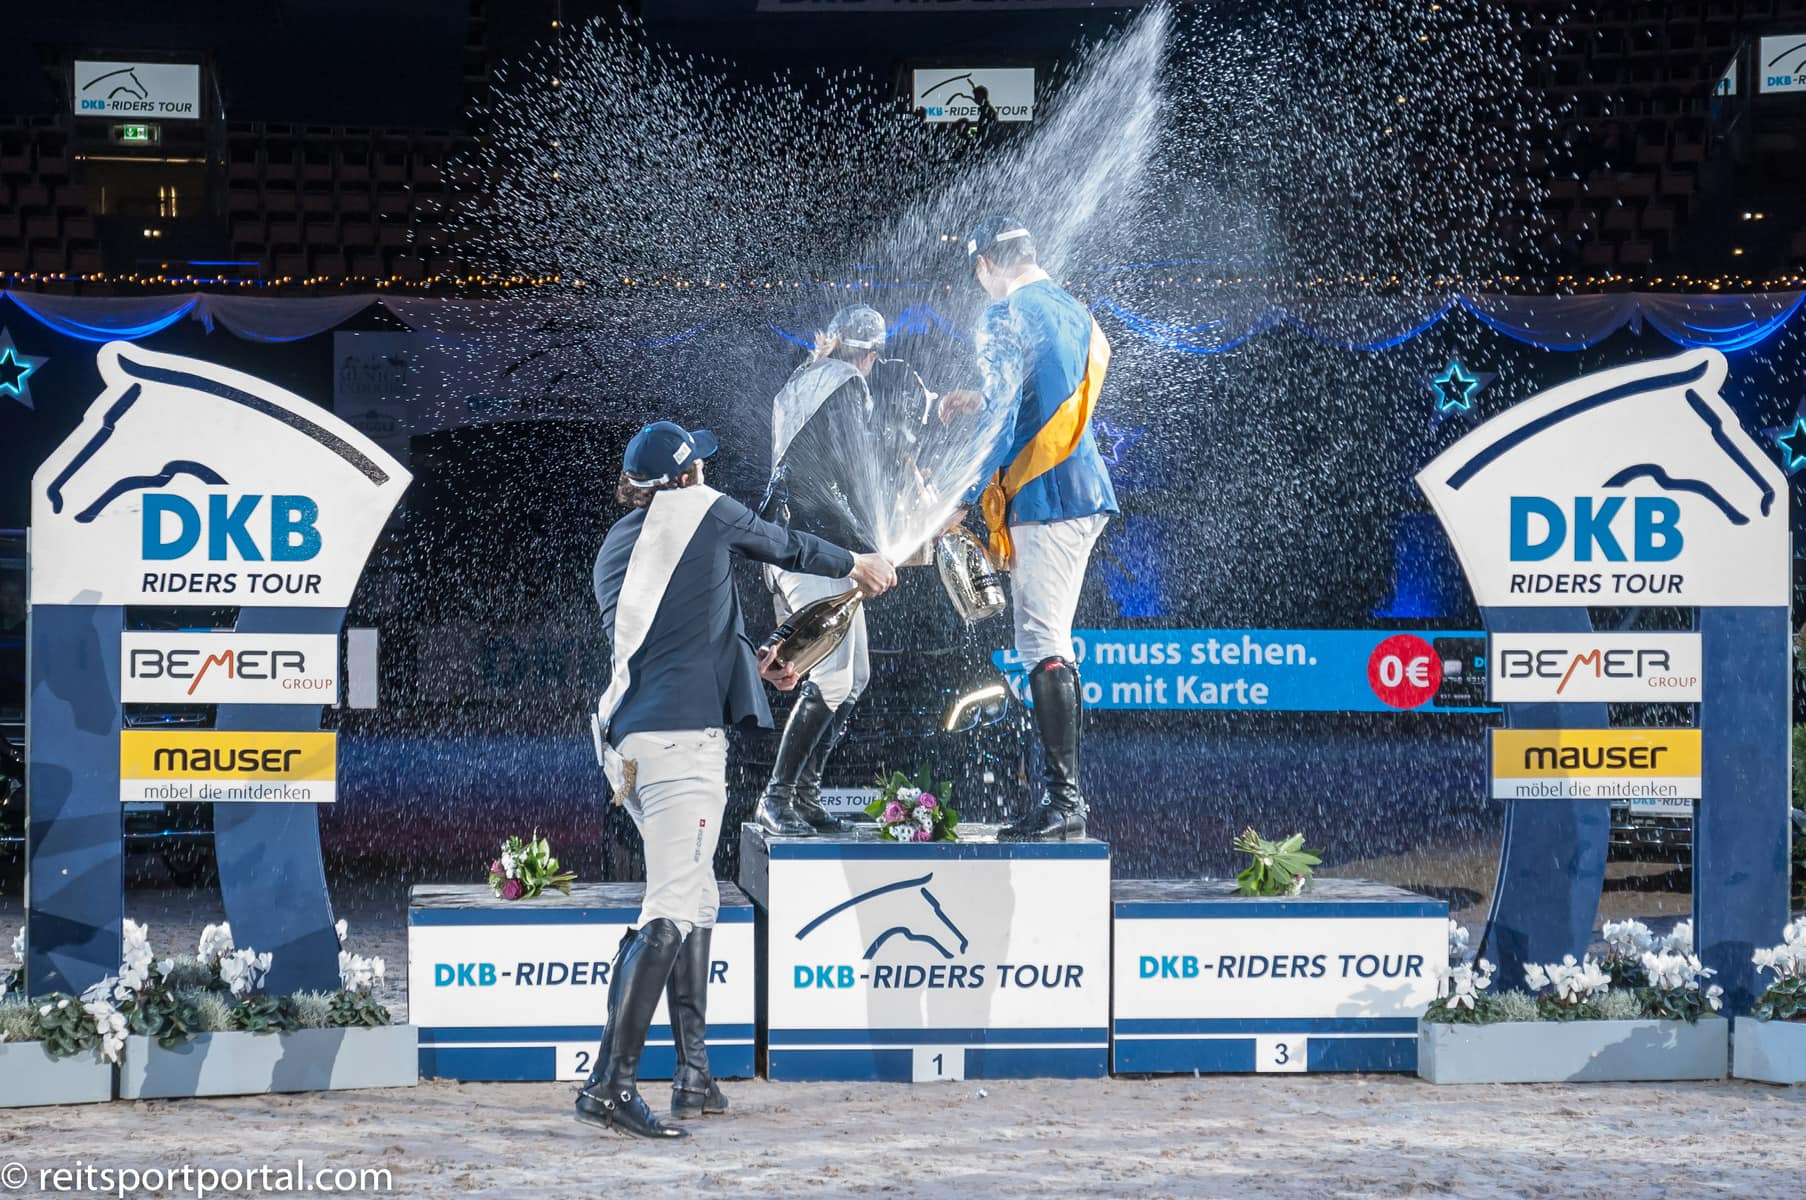 Rider of the Year Champagnerdusche